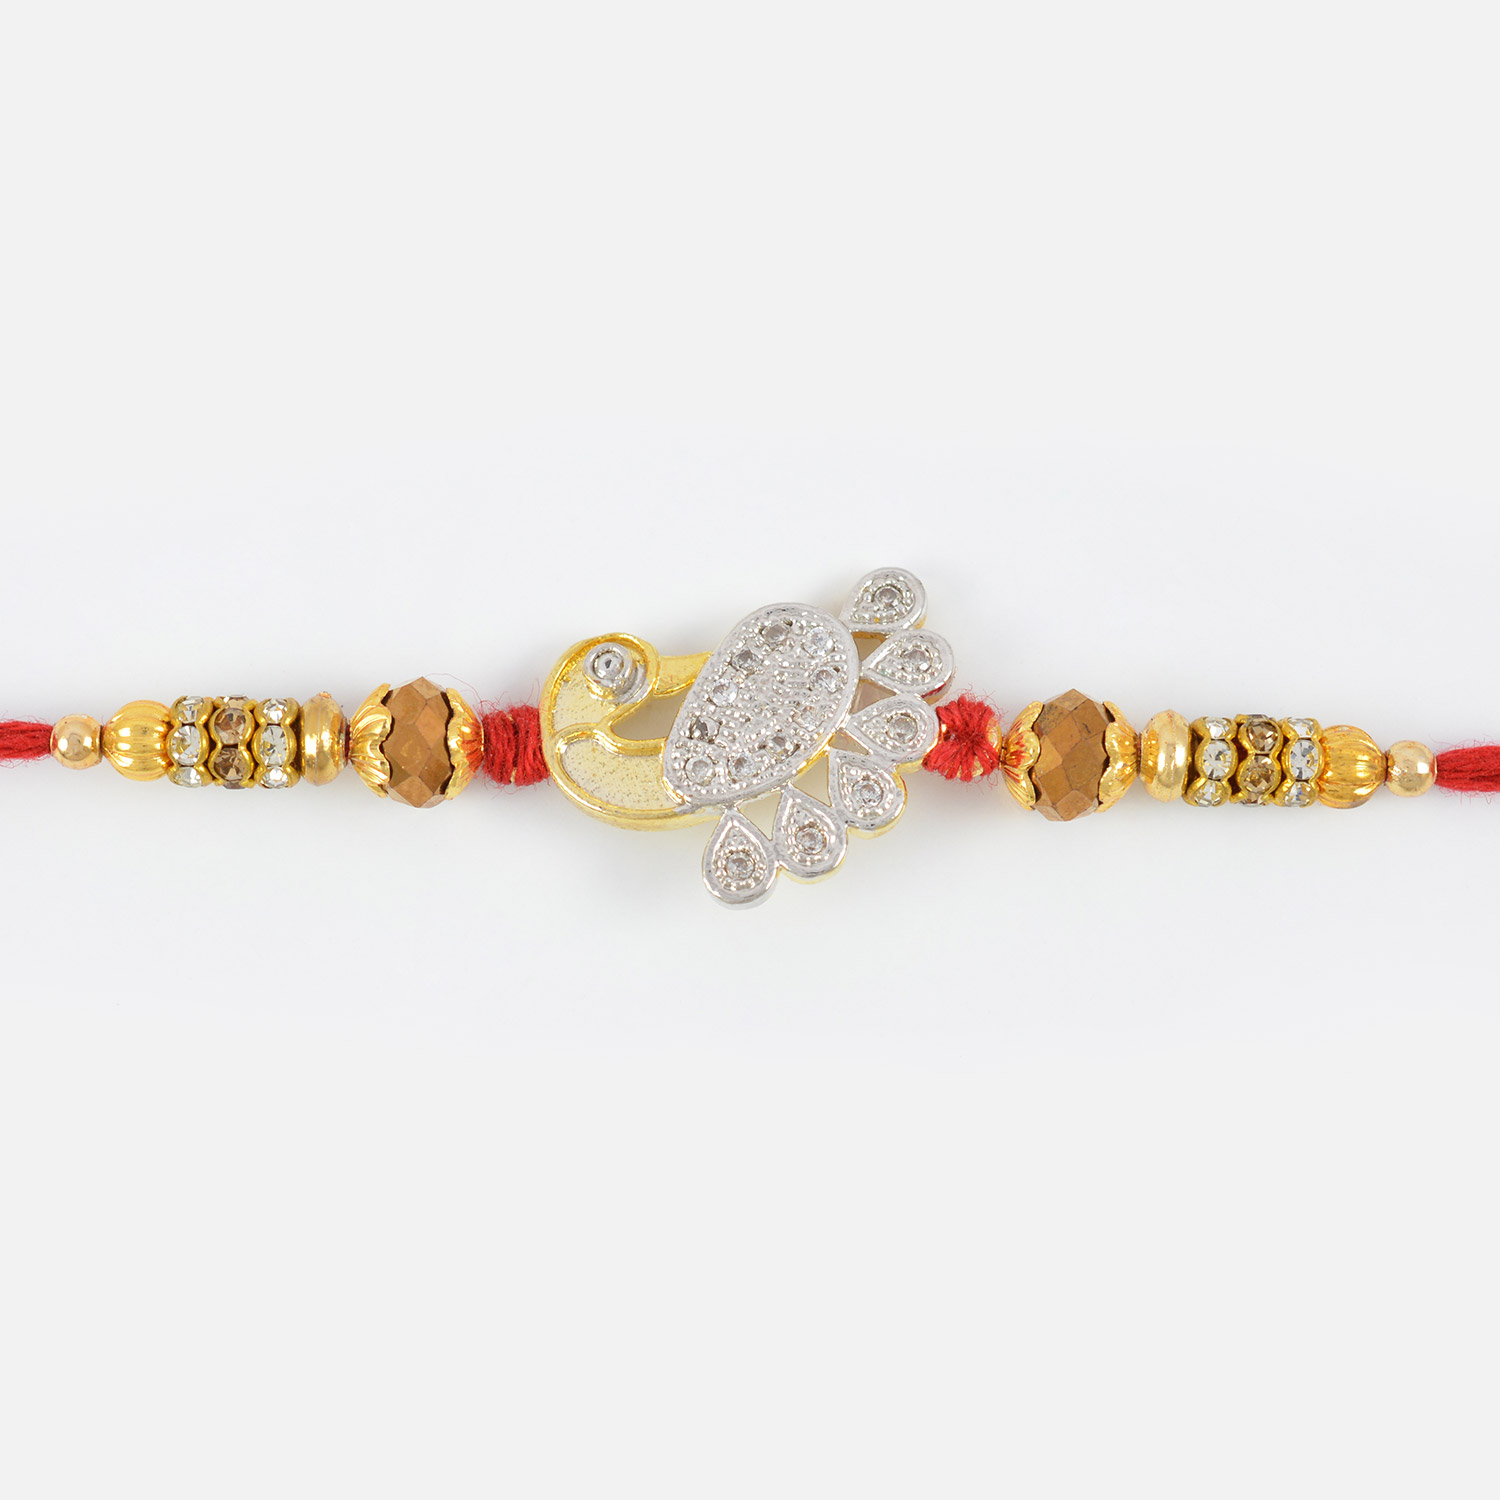 Silver and Golden Designer Peacock Rakhi with Shining Beads